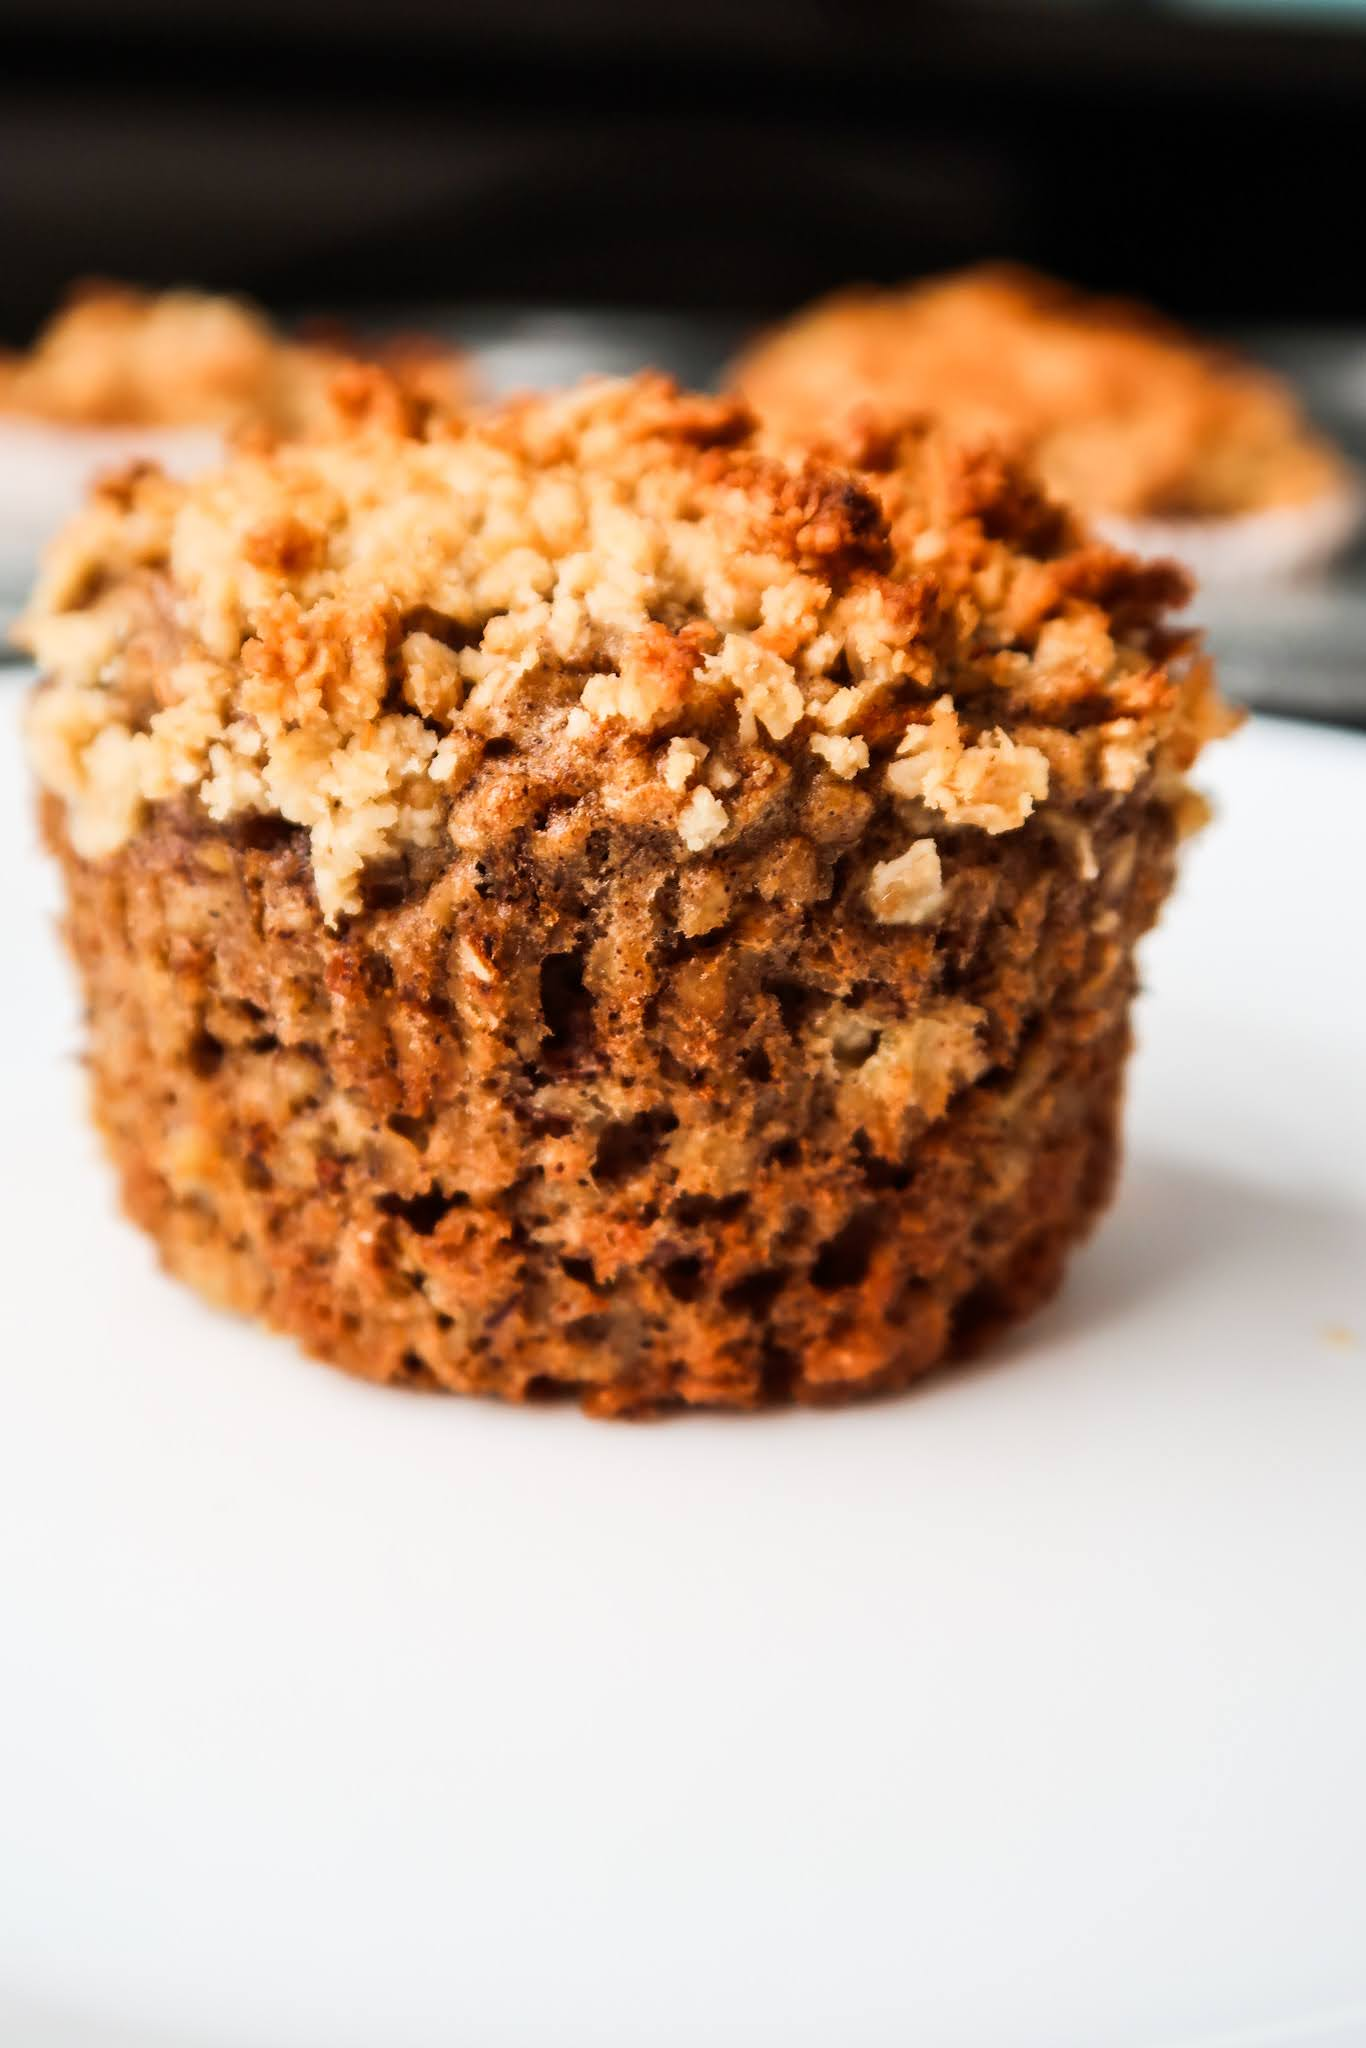 If you're looking for some delicious and easy breakfast ideas to meal prep this week, you need to try this healthy oatmeal banana muffin recipe!